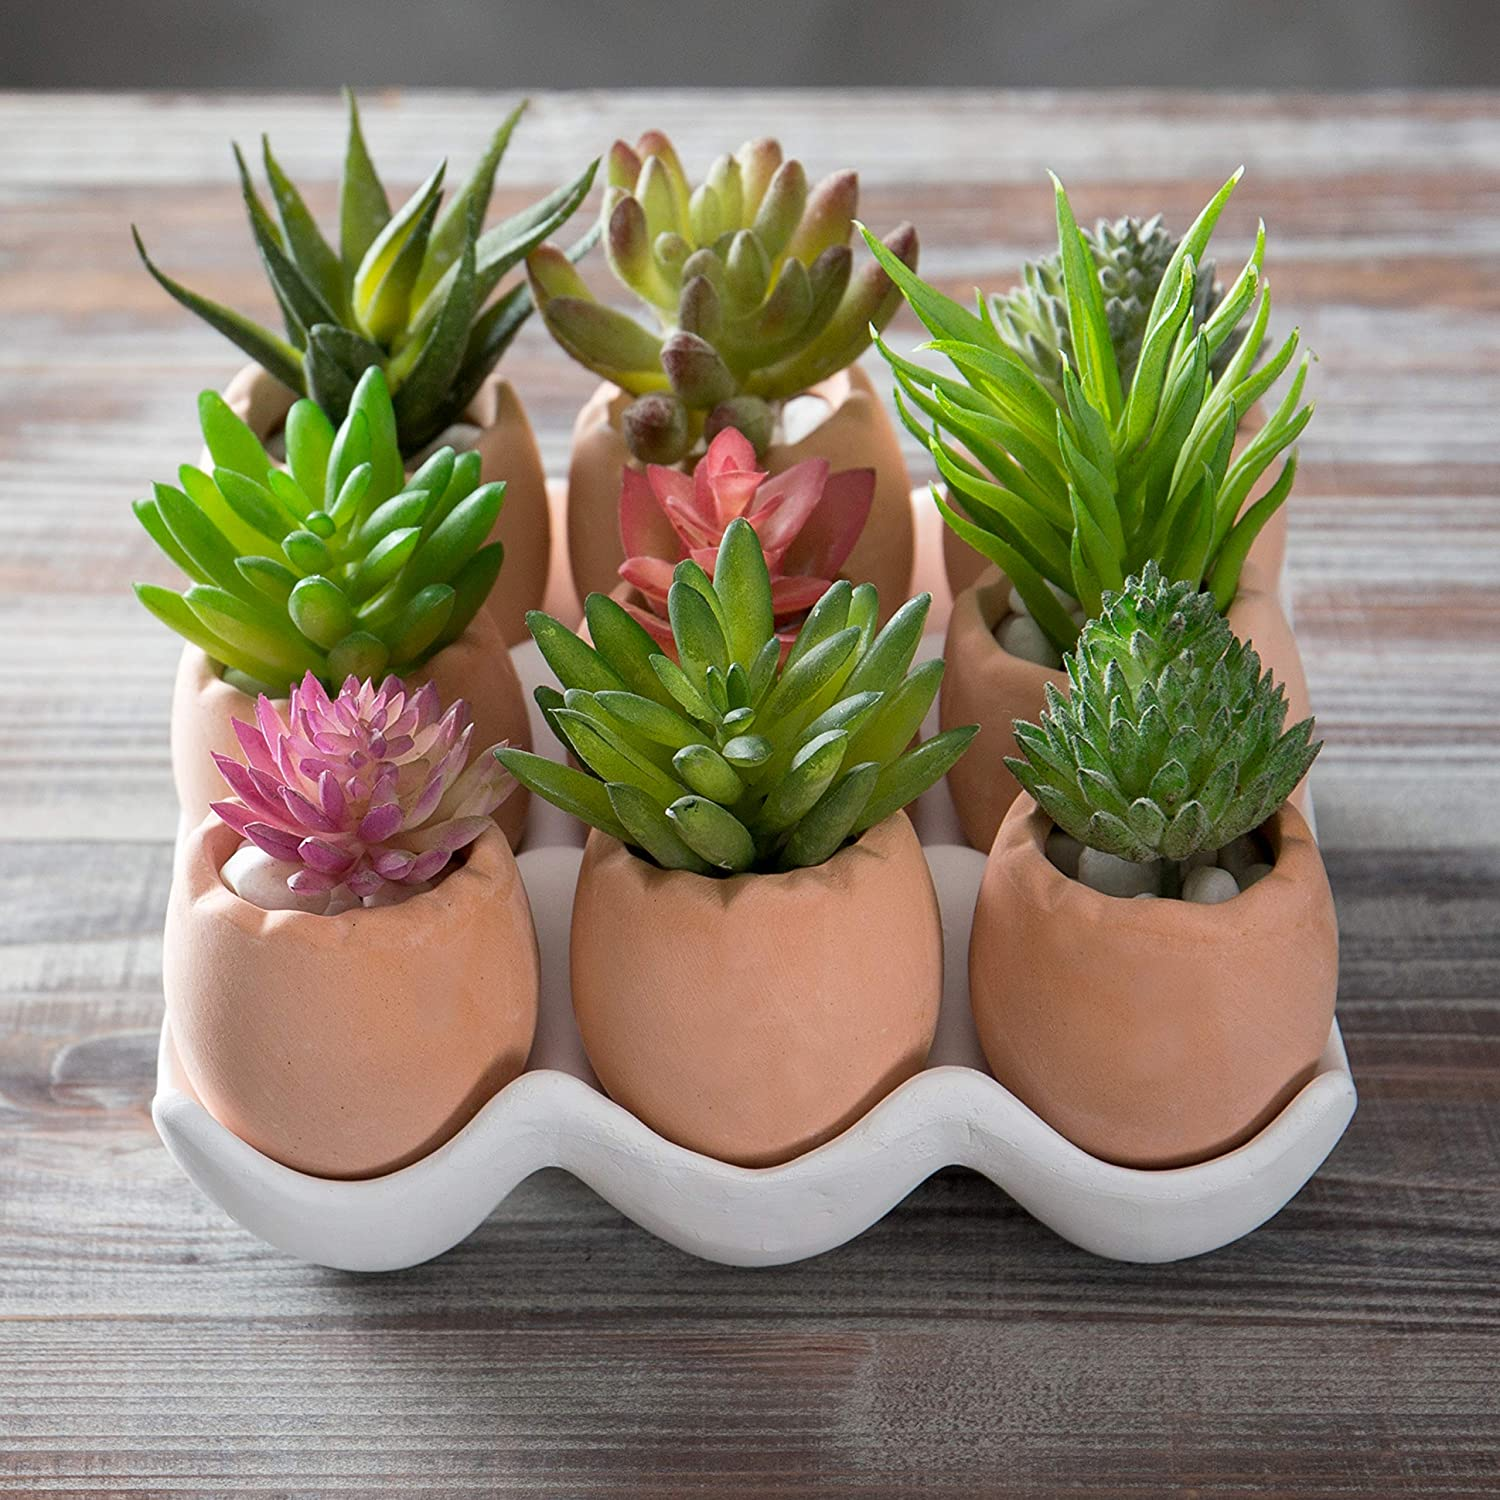 Darling Brown Eggs Ceramic Succulent Planters